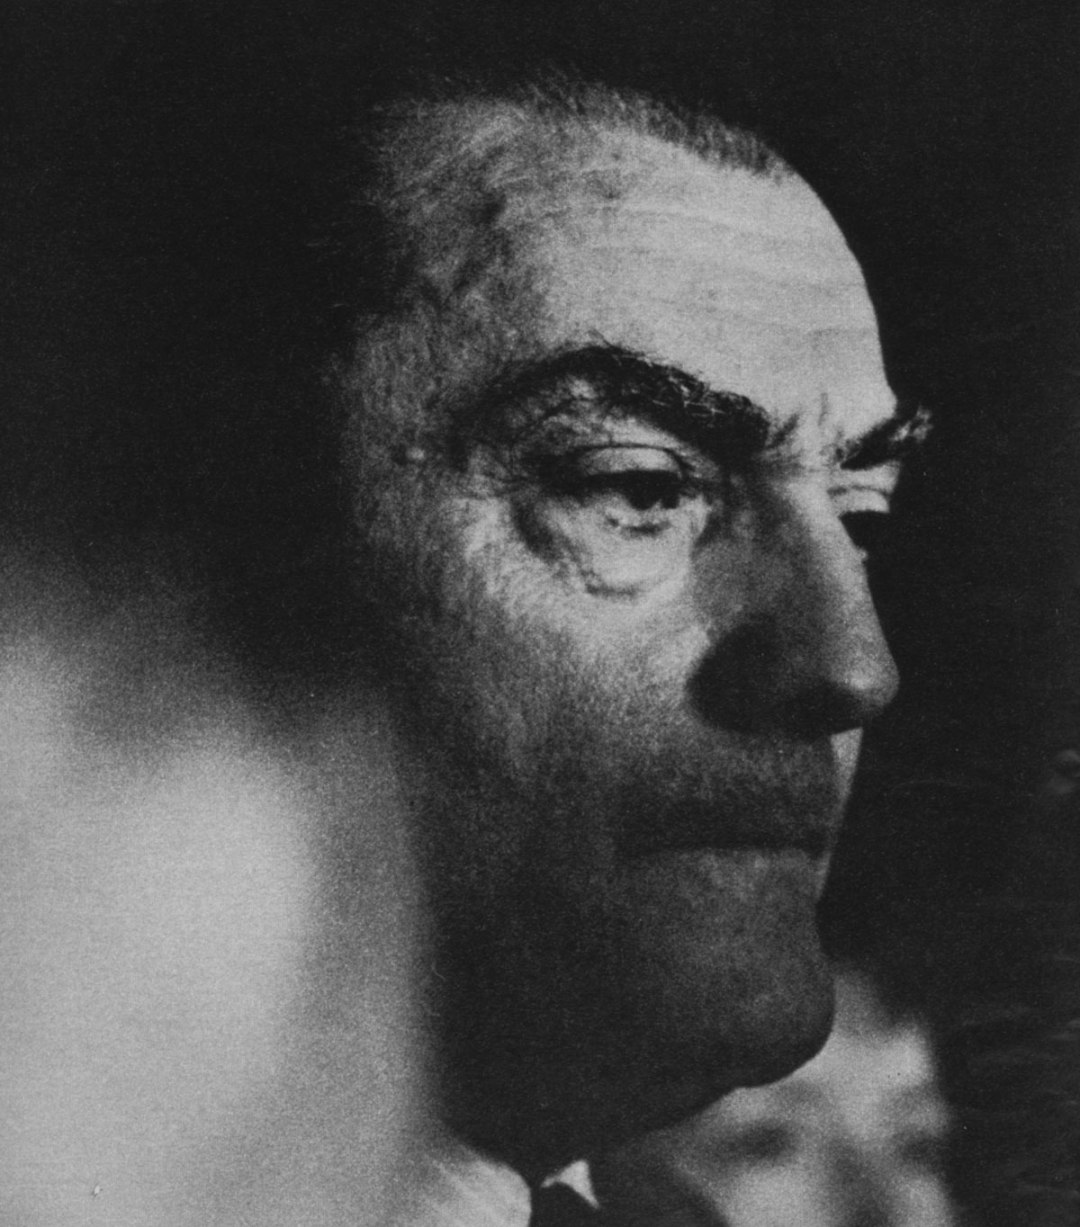 Luchino Visconti 1963